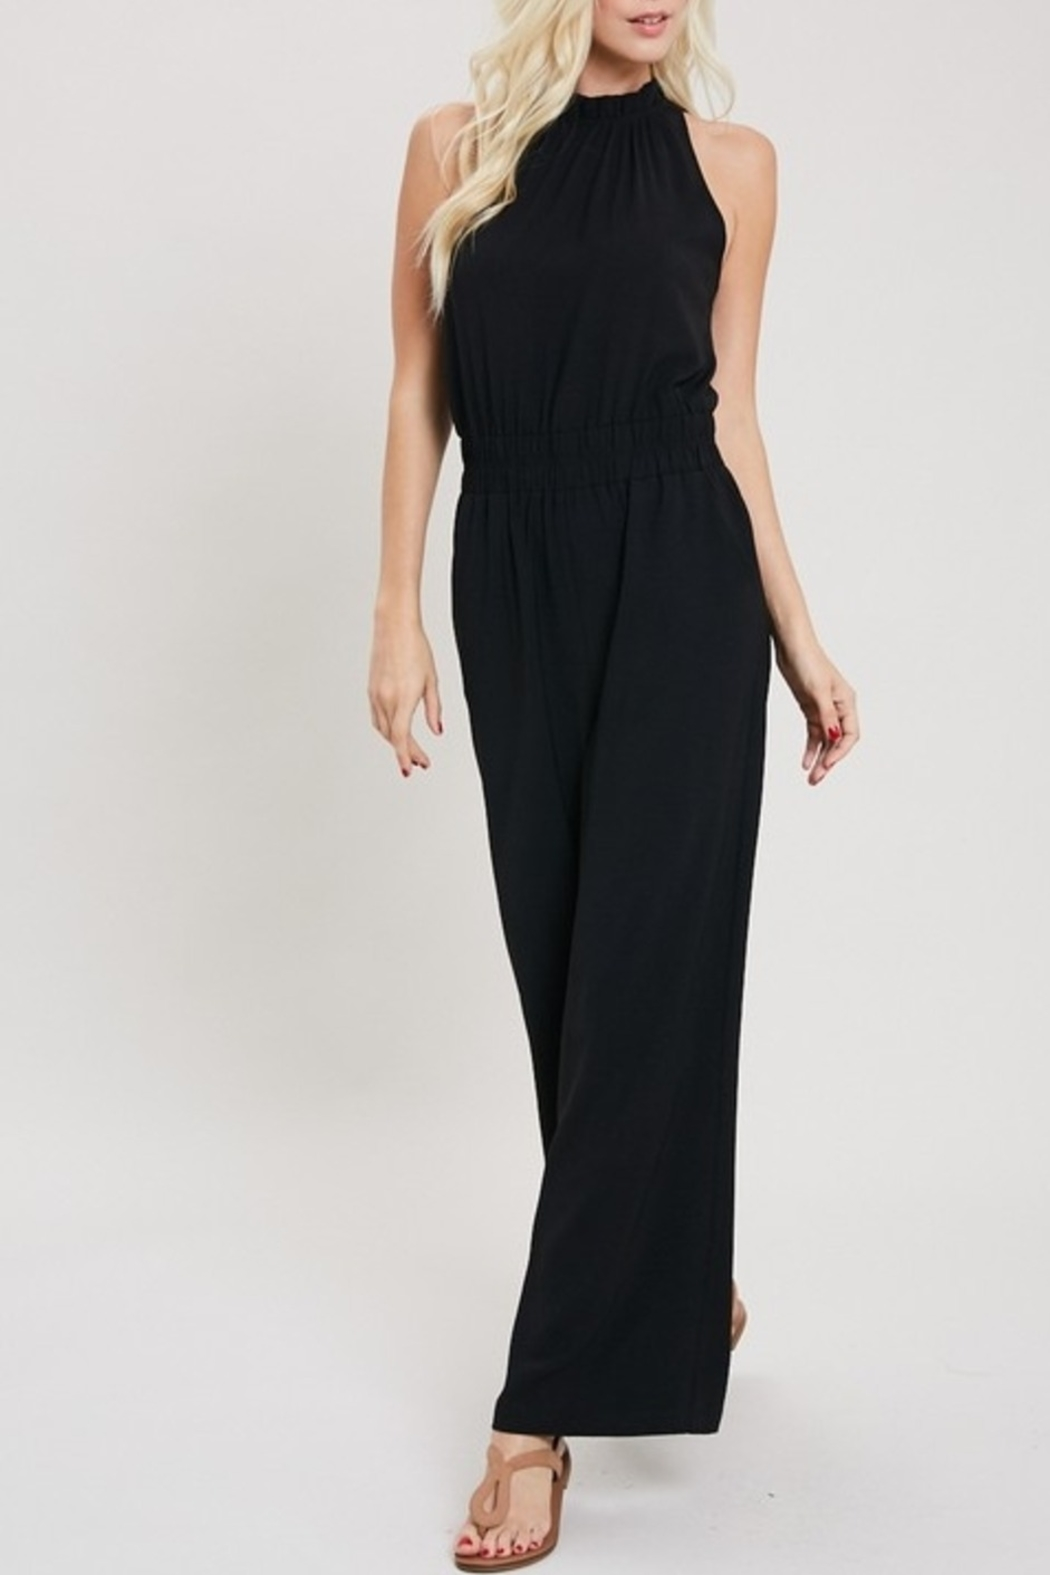 afea3b3f27ed ee:some Simple Love jumpsuit from Mississippi by Exit 16 ...